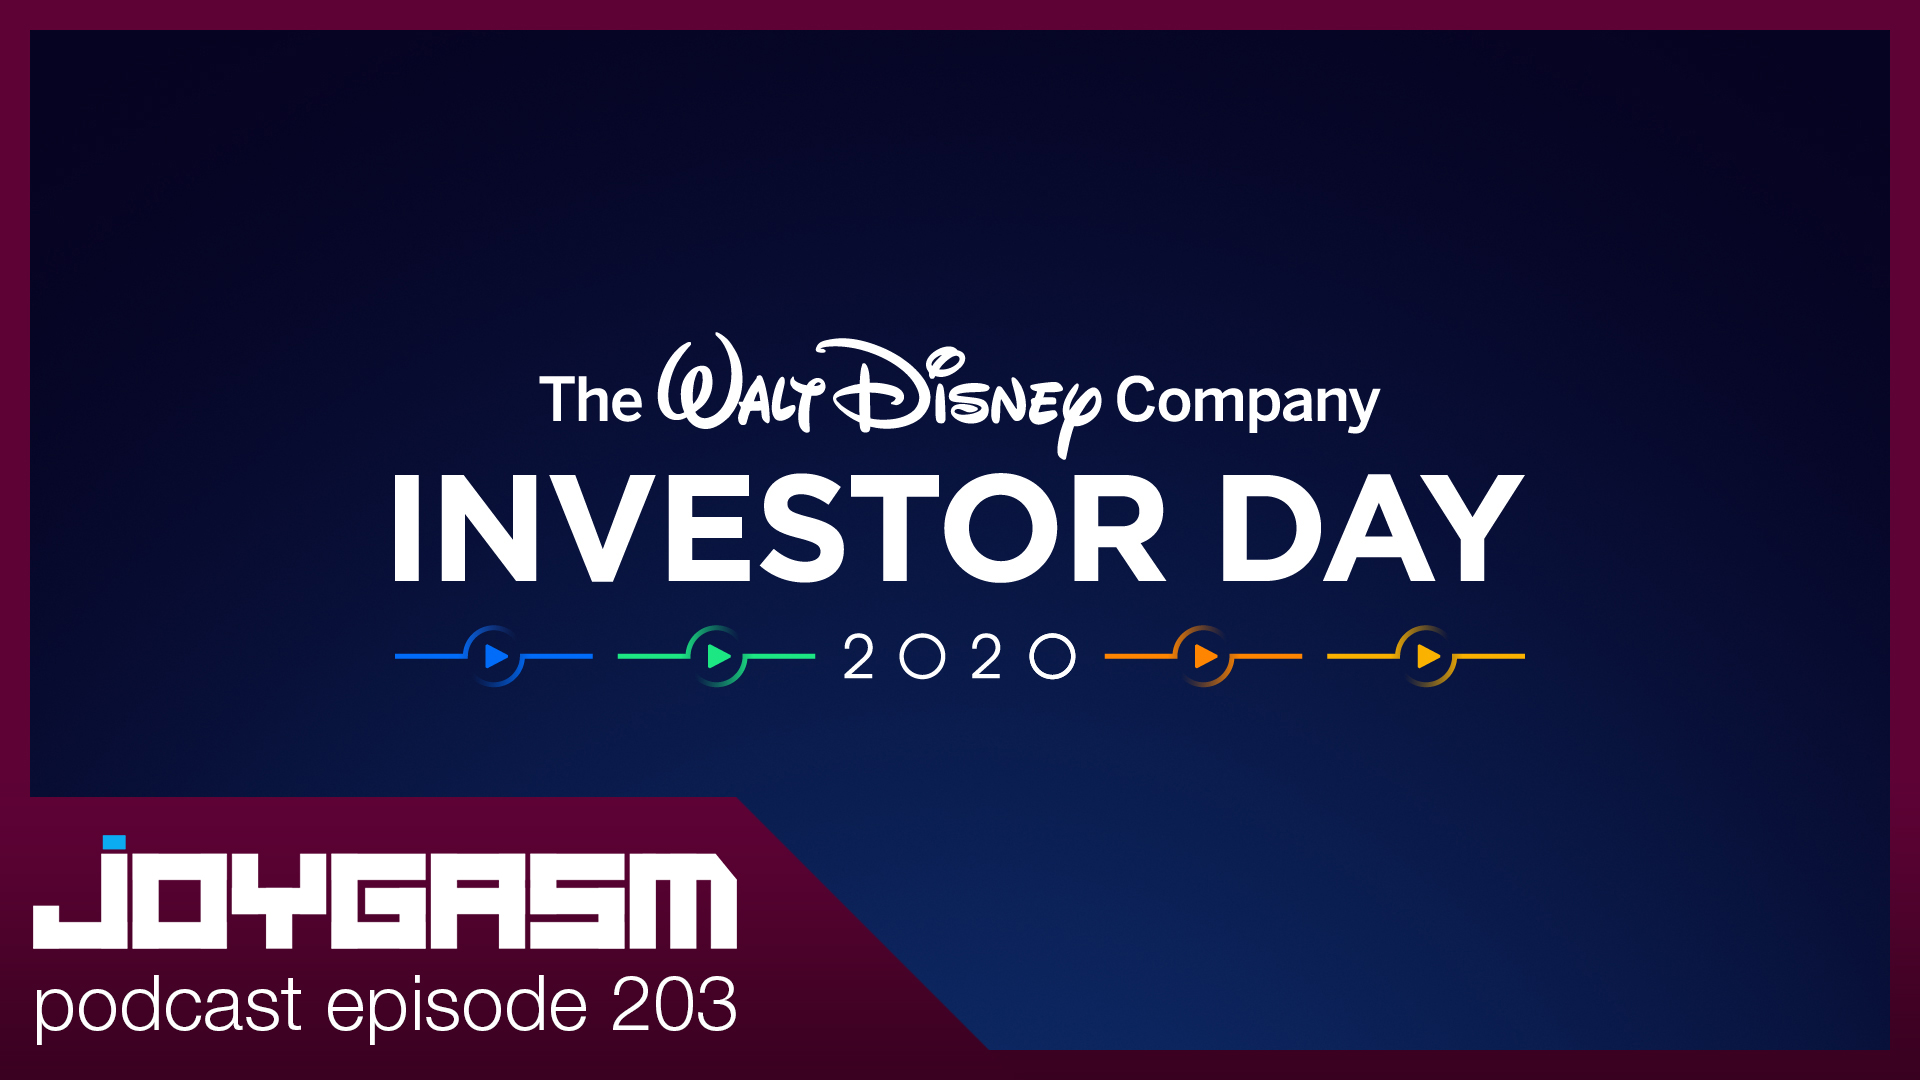 Ep. 203: Disney Investors Day 2020, The Game Awards Winners, & More